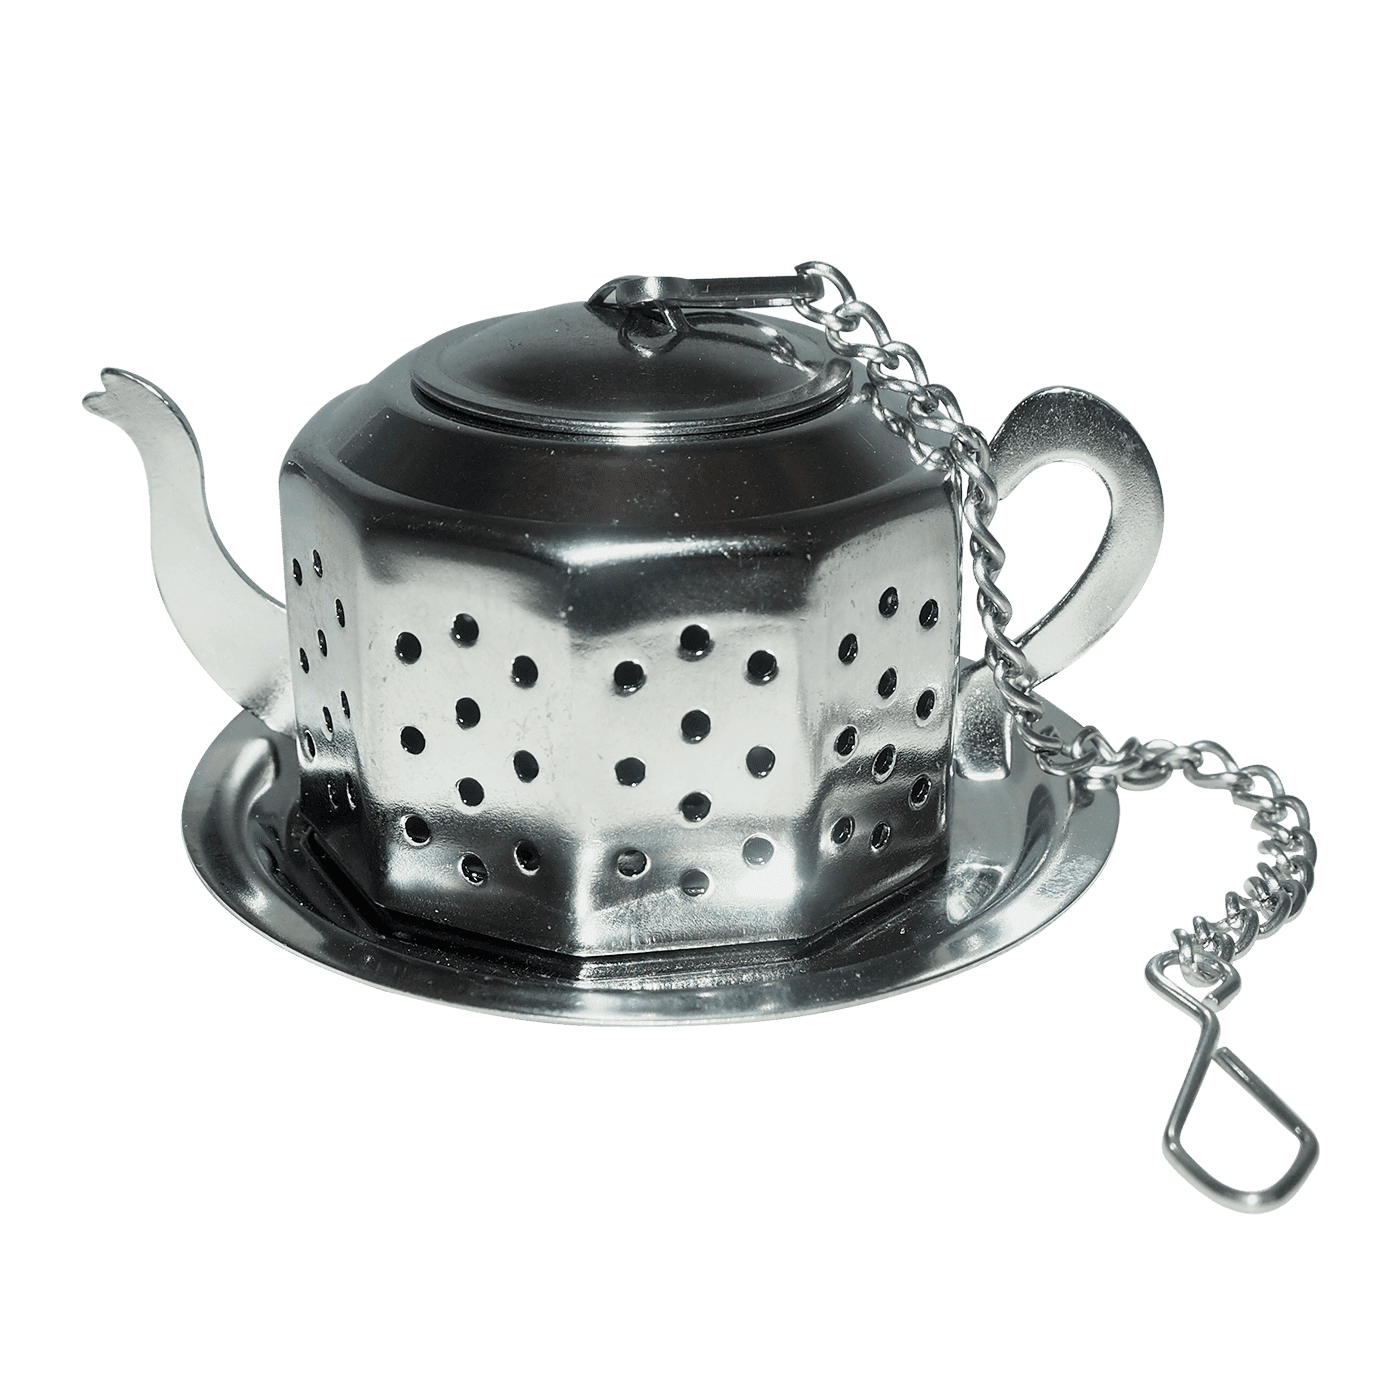 Harriets Stainless Steel Tea Infuser